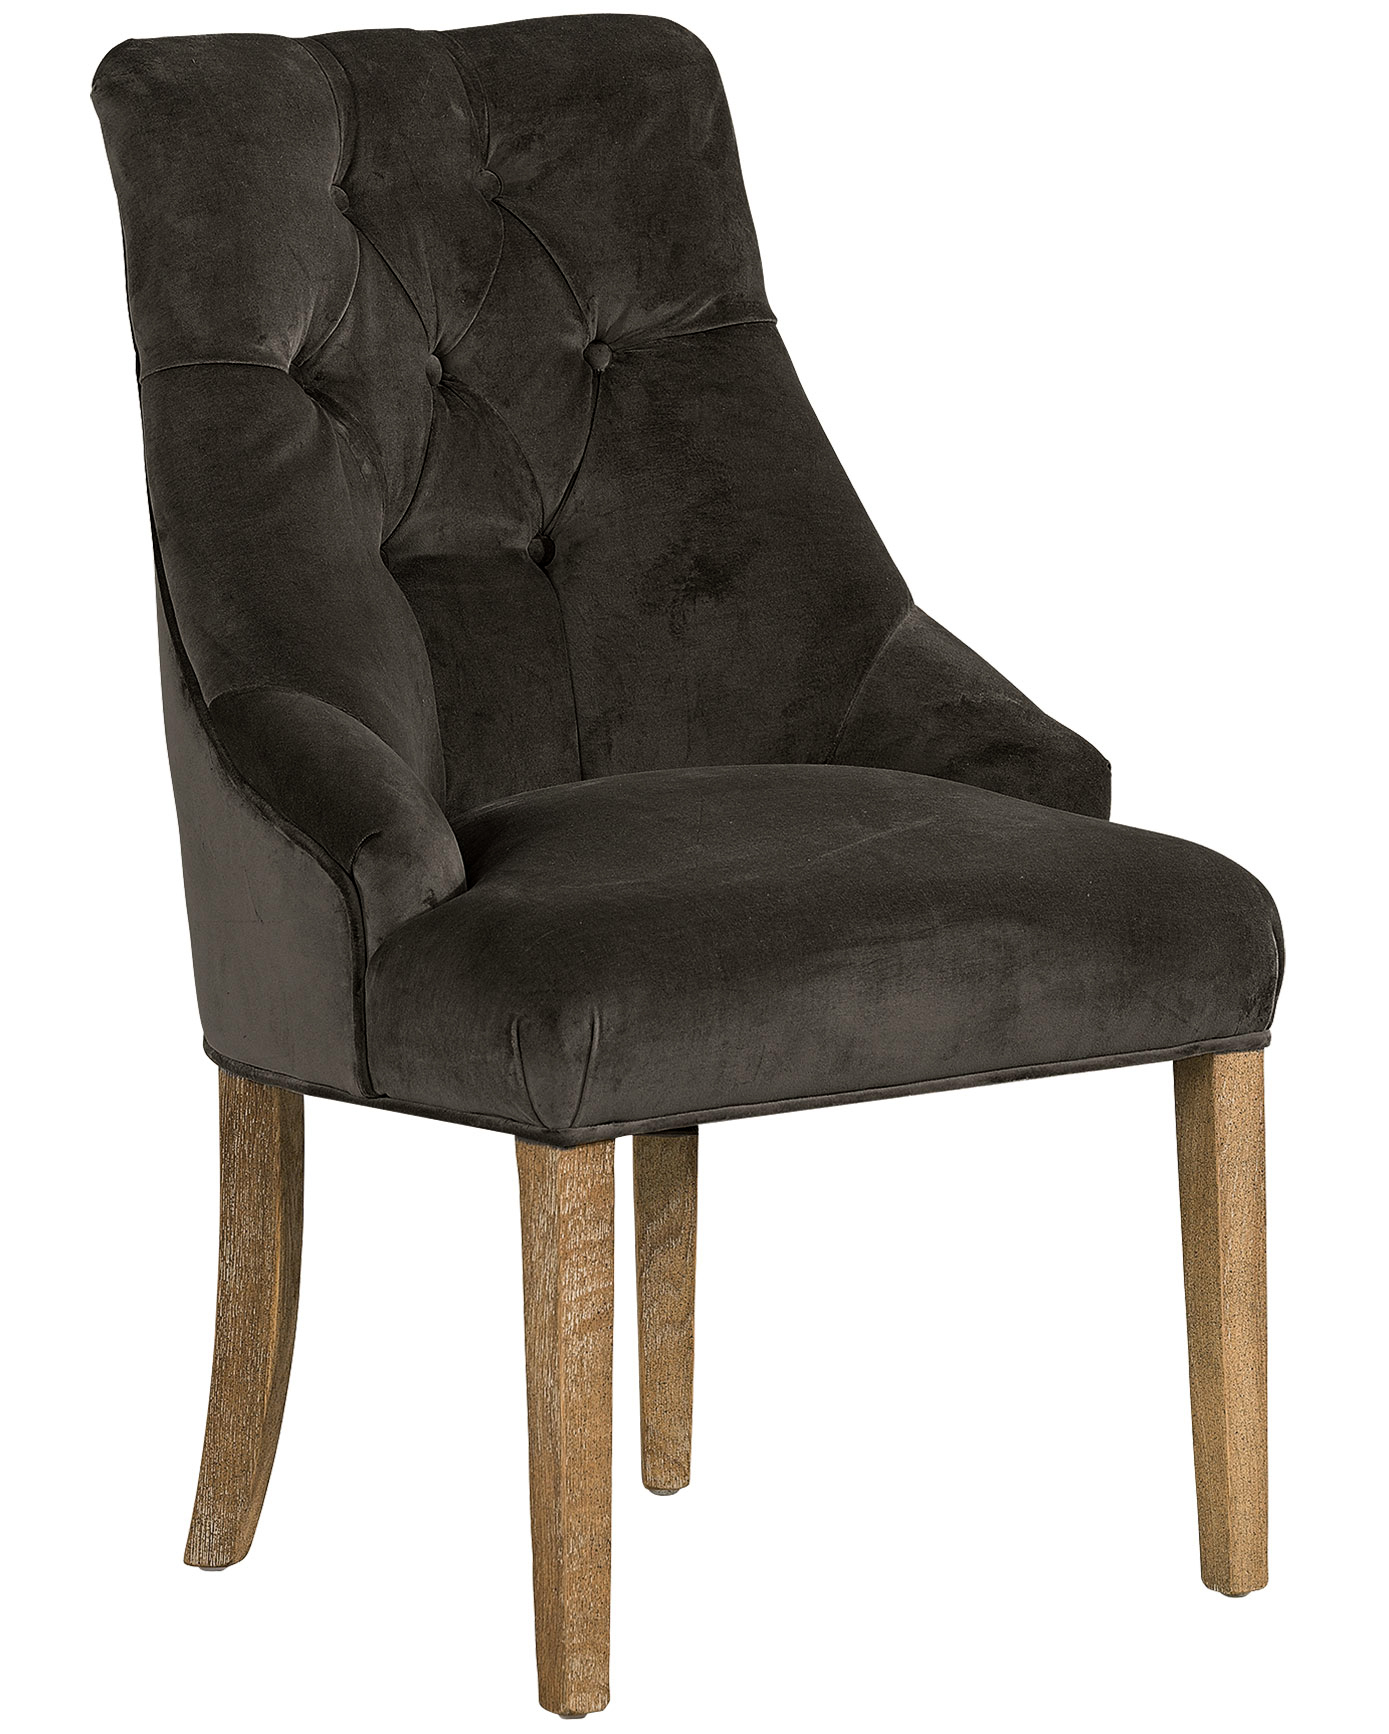 YORK Dining chair ARTWOOD IMAGE BY ME ARTWOOD